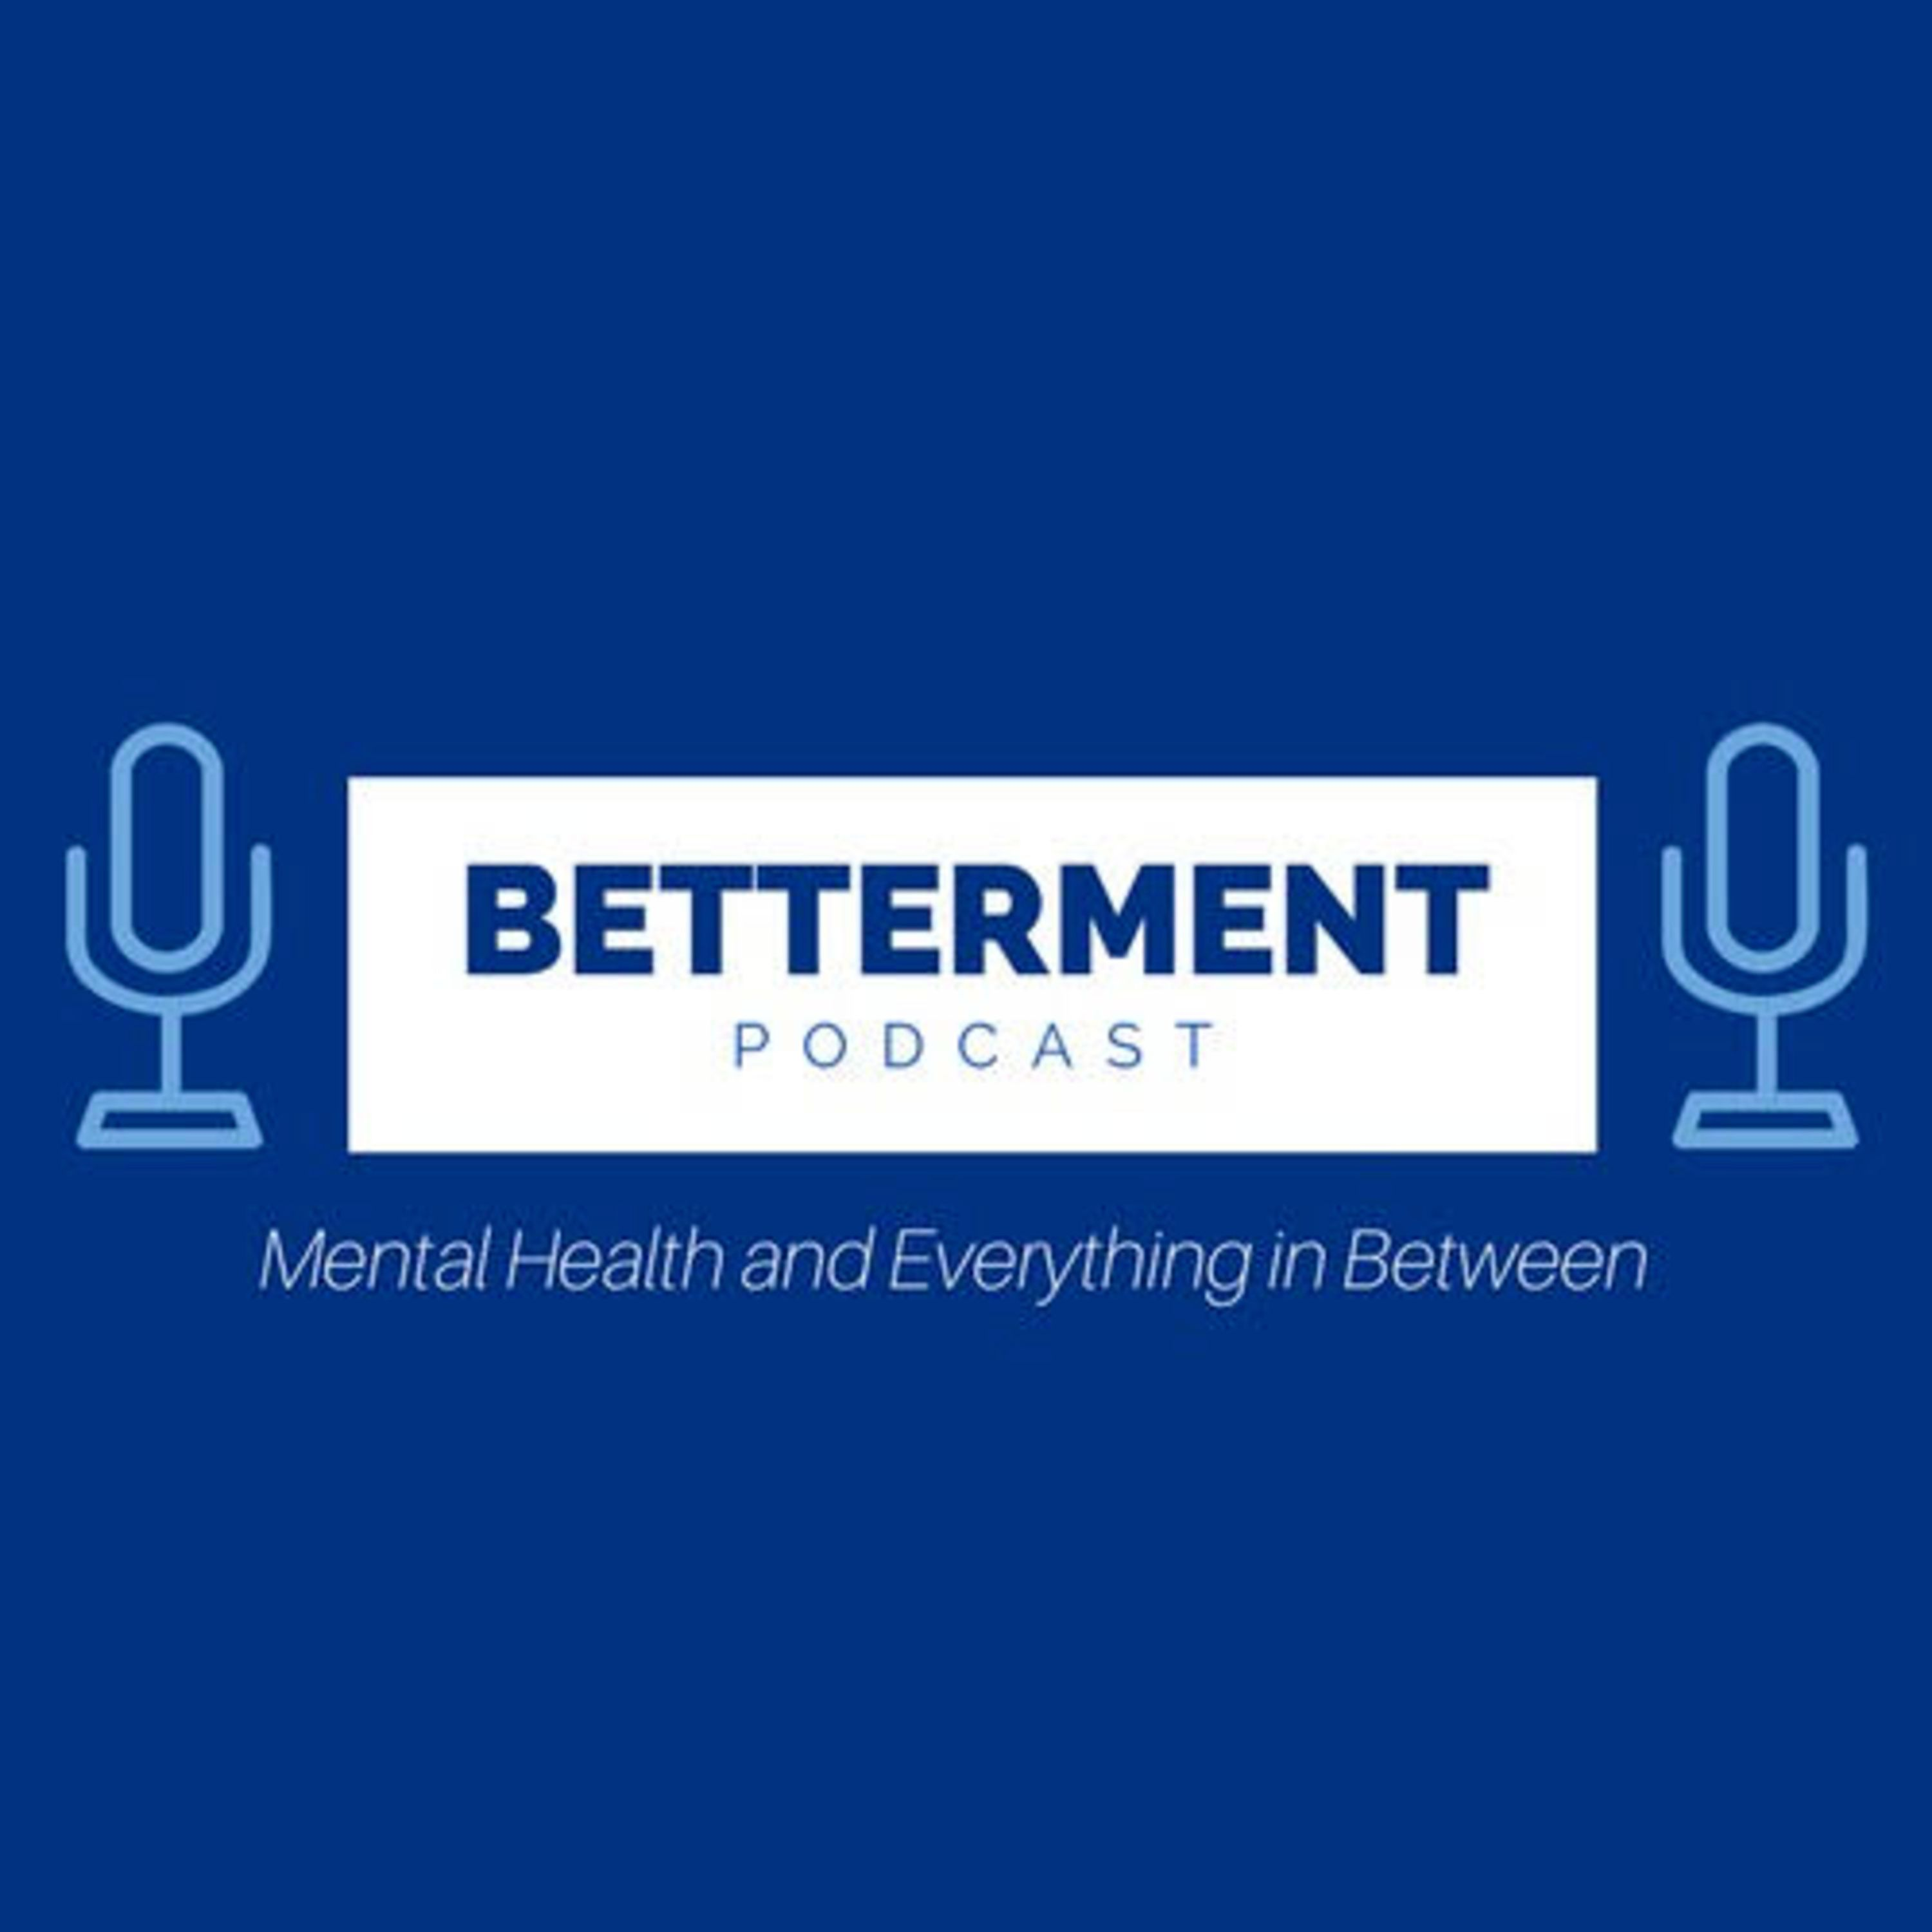 Betterment Podcast Episode 08 - Showing Love When It's Hard To